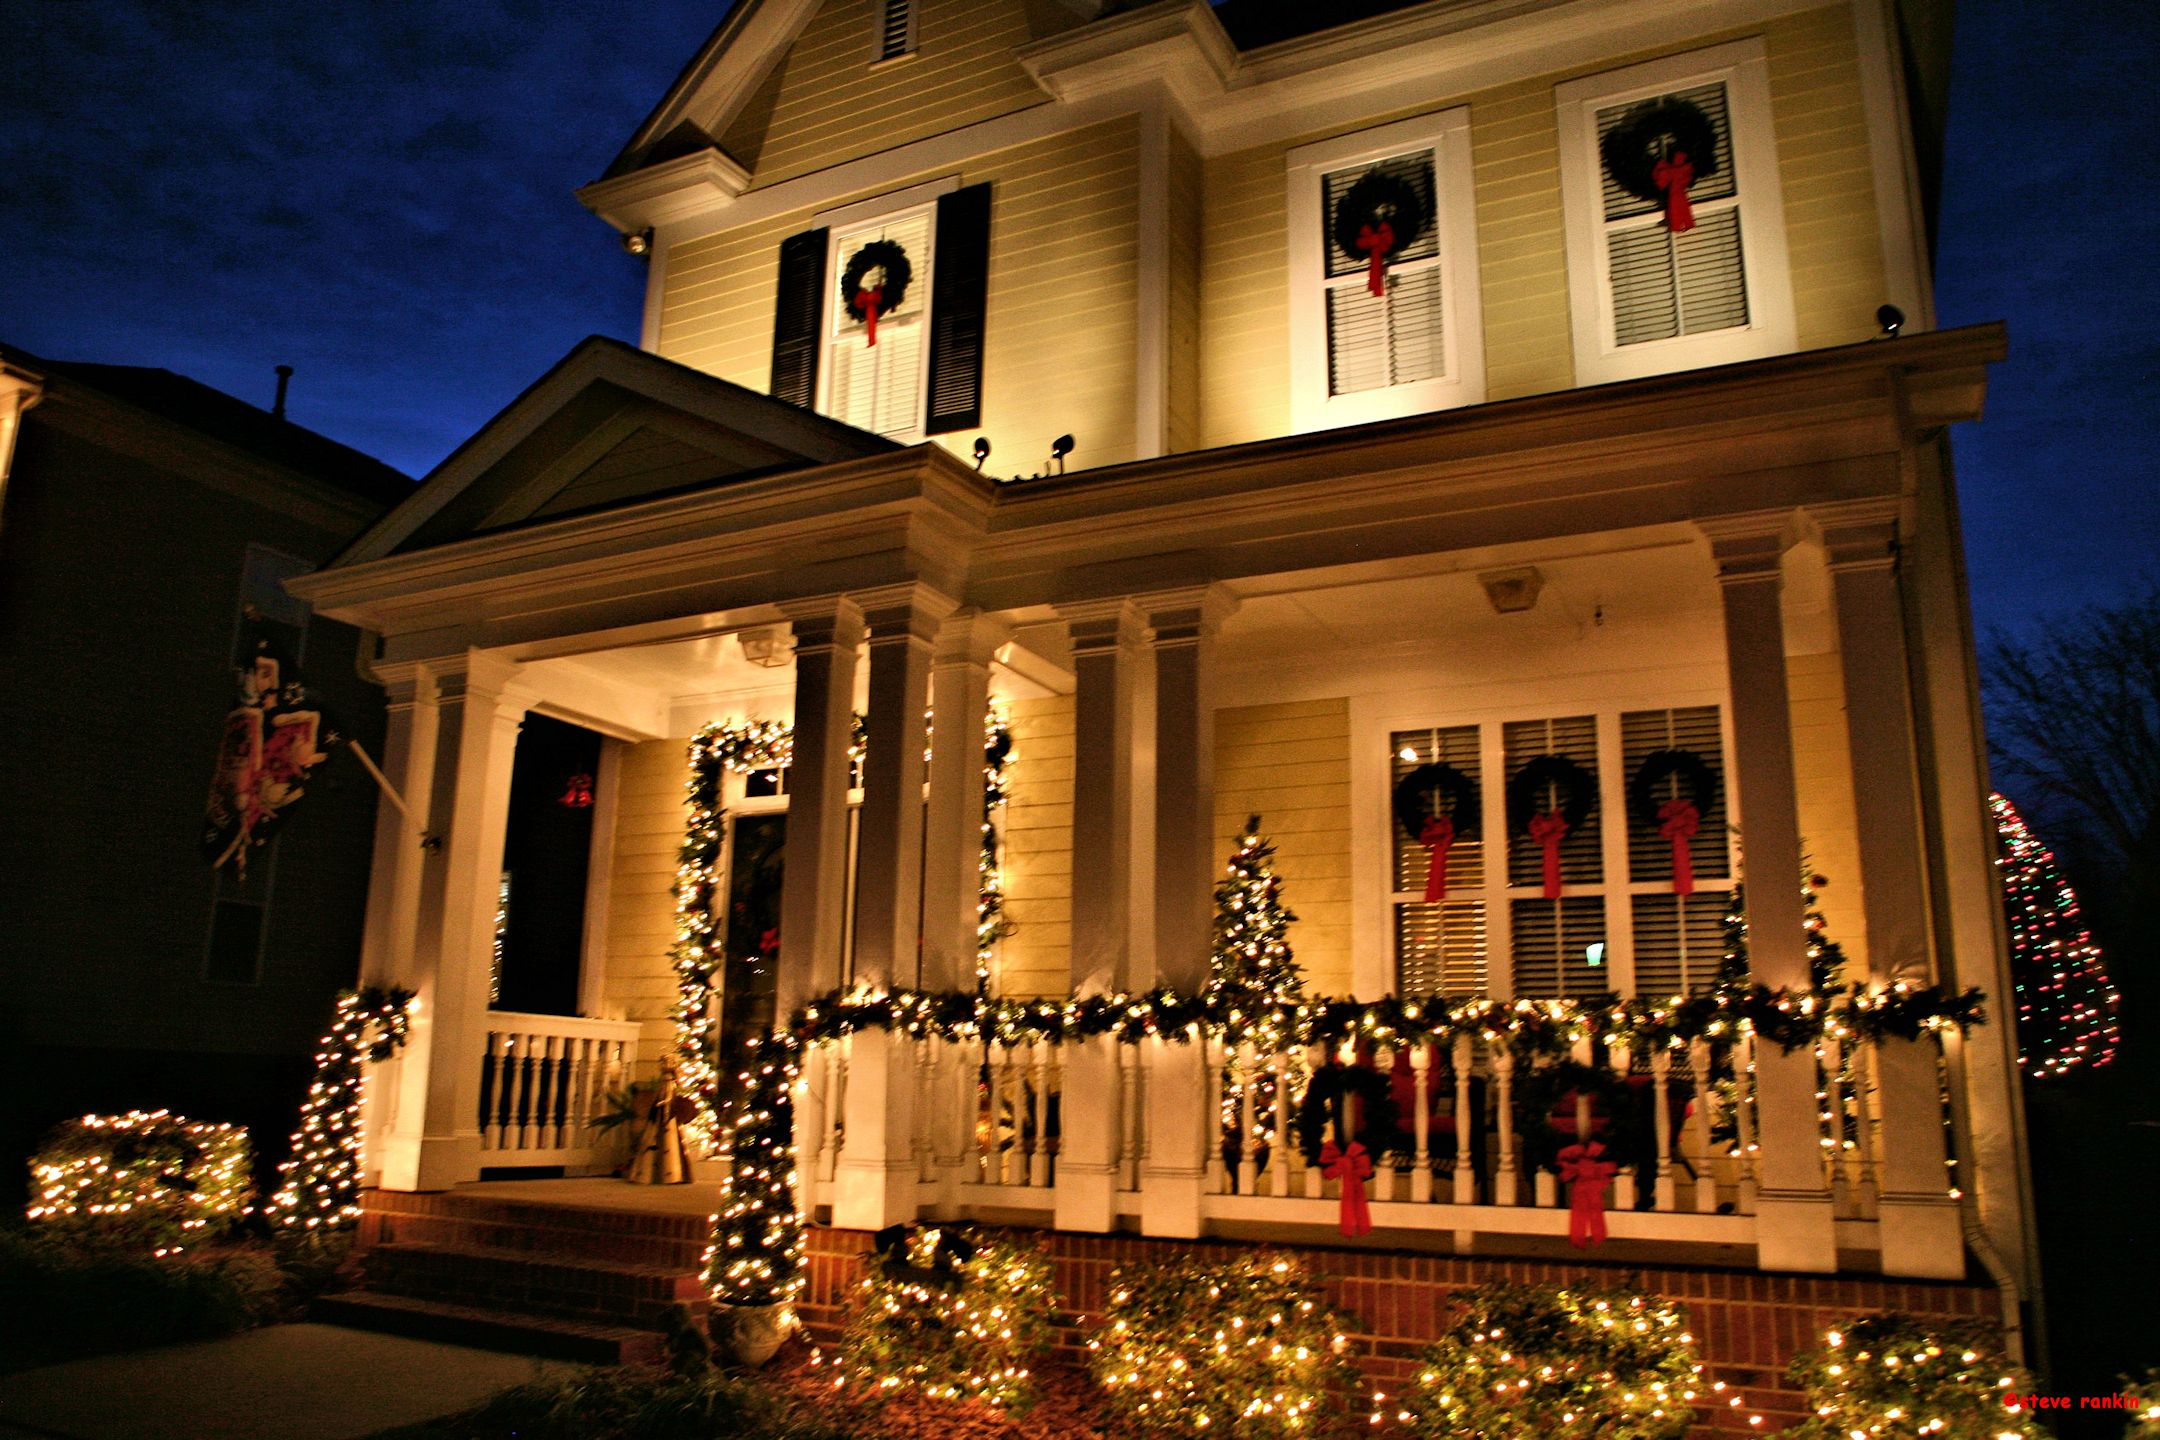 christmas town usa in mcadenville nc christmas location web address